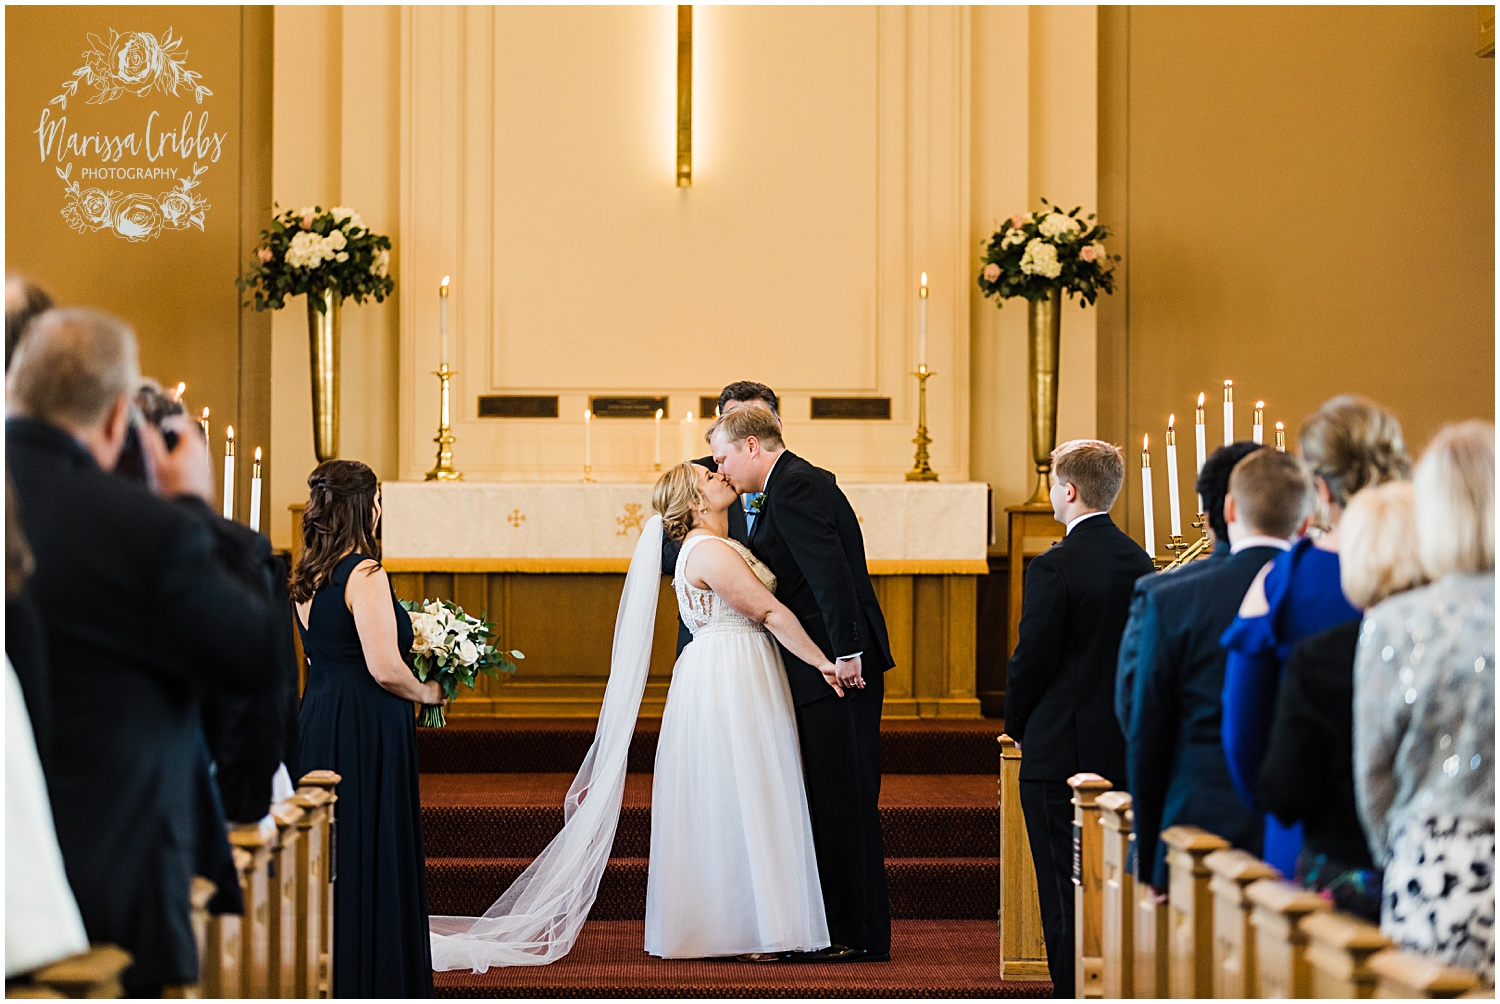 RACHEL & SCOTT MARRIED | MARISSA CRIBBS PHOTOGRAPHY_7709.jpg